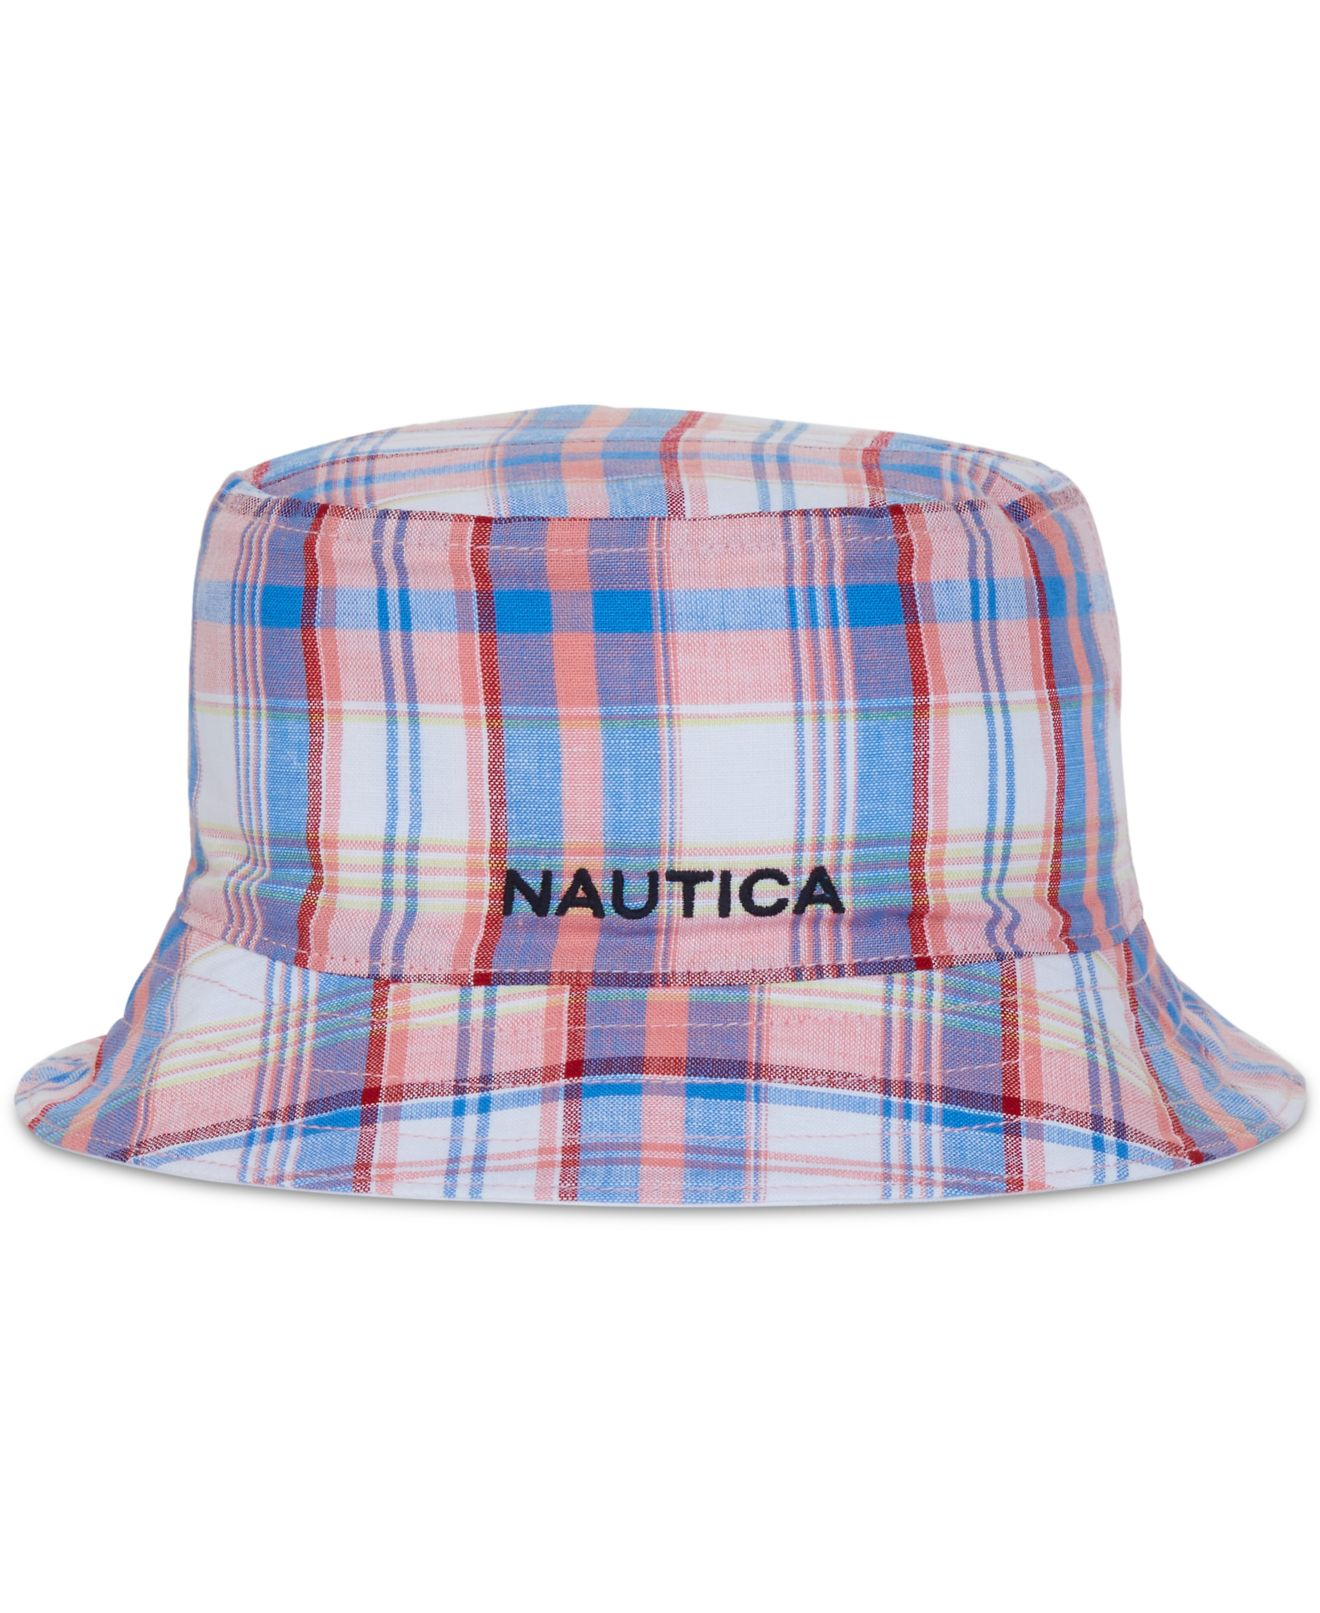 Details about Nautica NEW Pink White Men s Size S M Reversible Plaid Solid Bucket  Hat  35  263 85e3ac25f4b